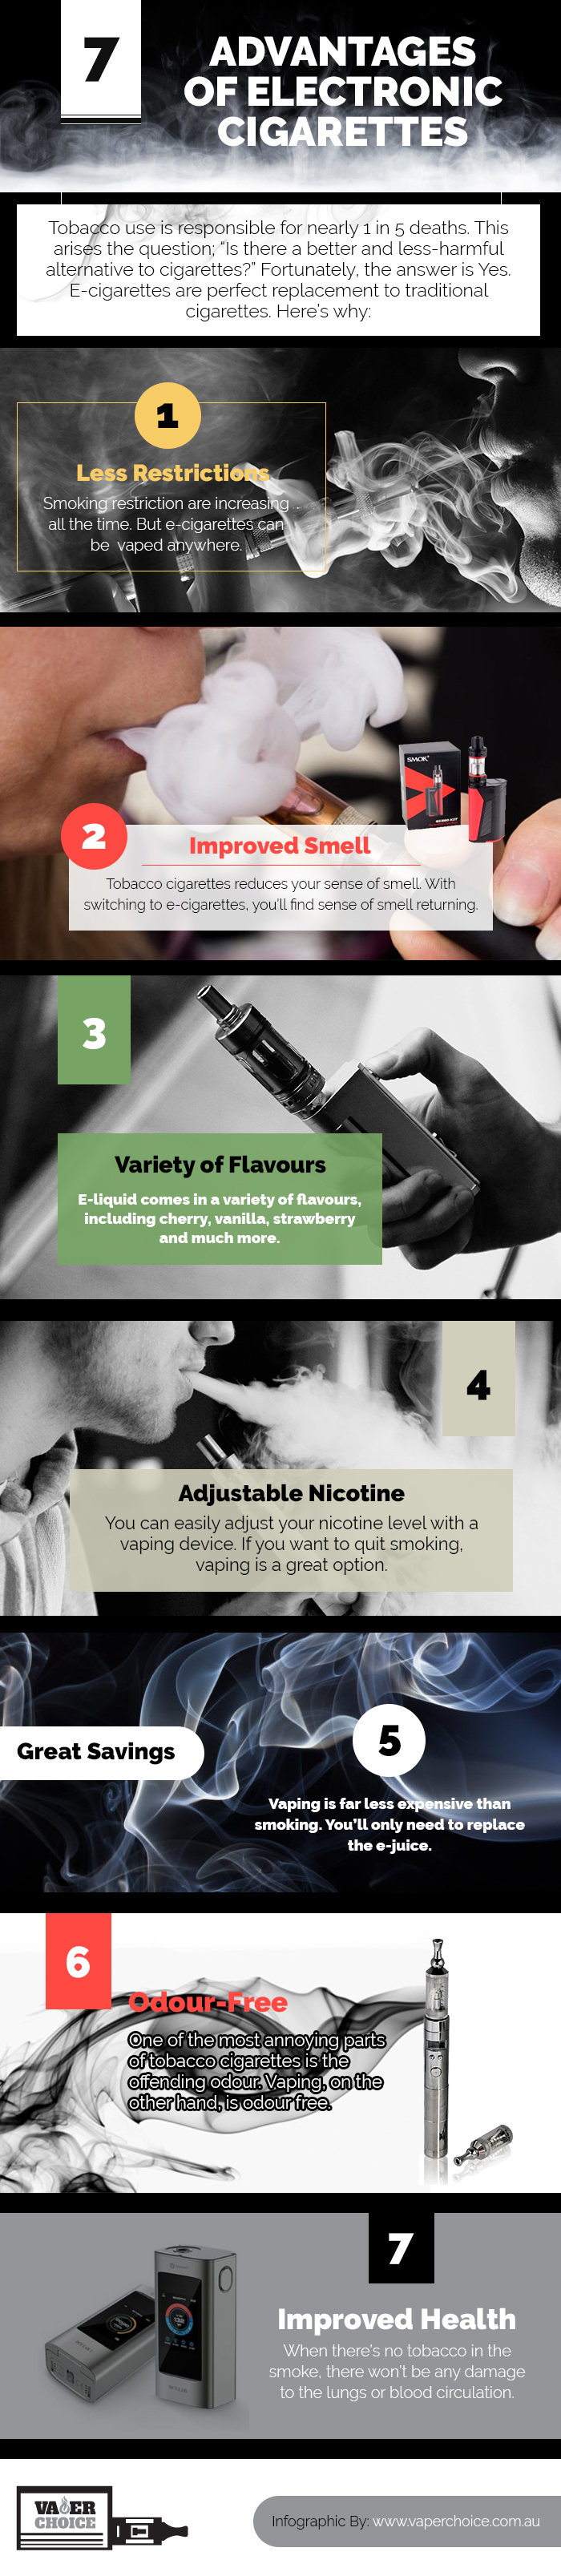 7 Advantages Of Electronic Cigarettes